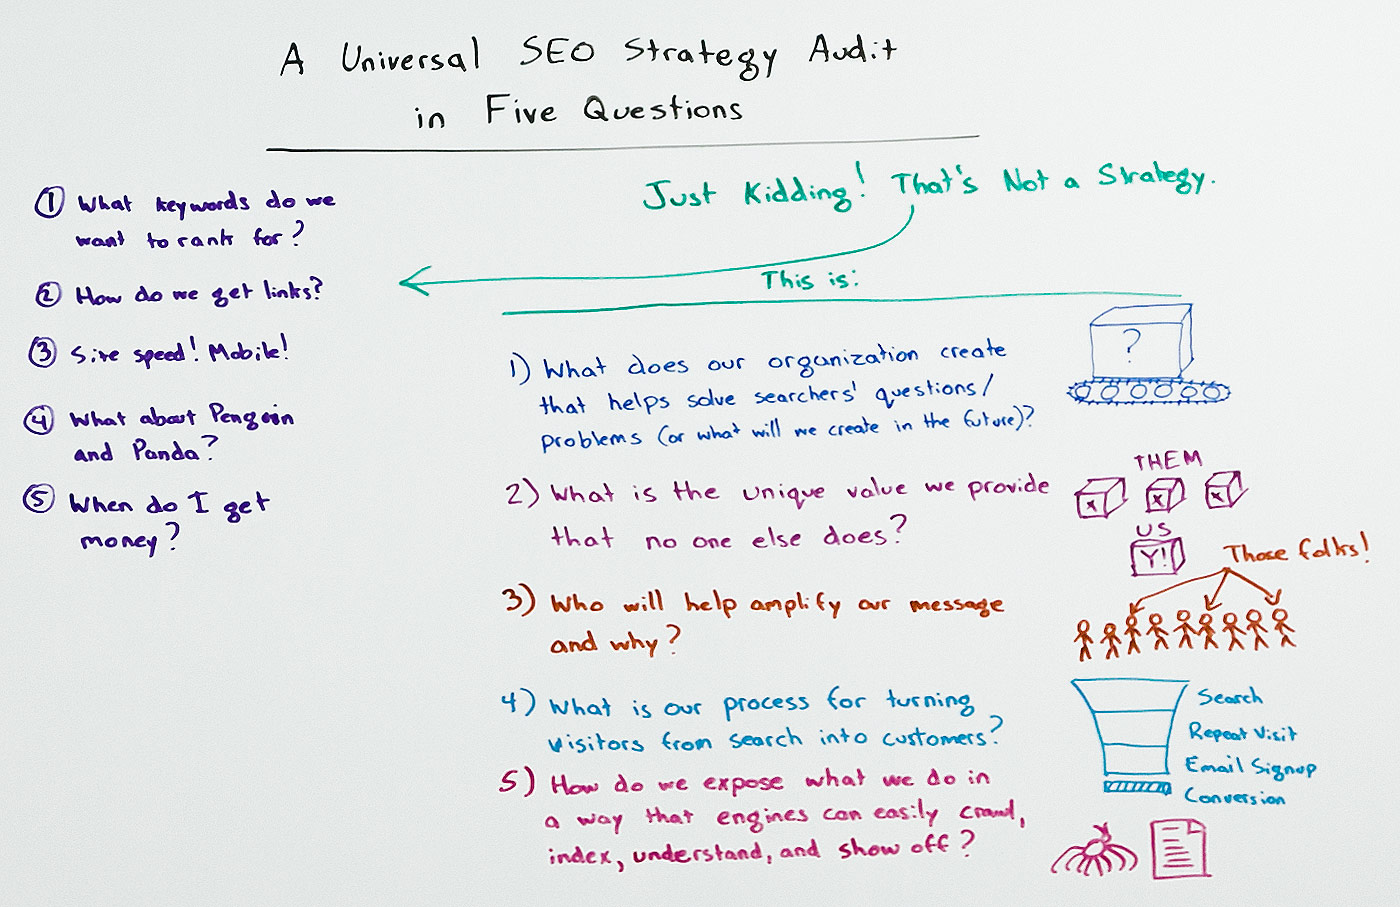 Seo Strategy Audit In 5 Steps